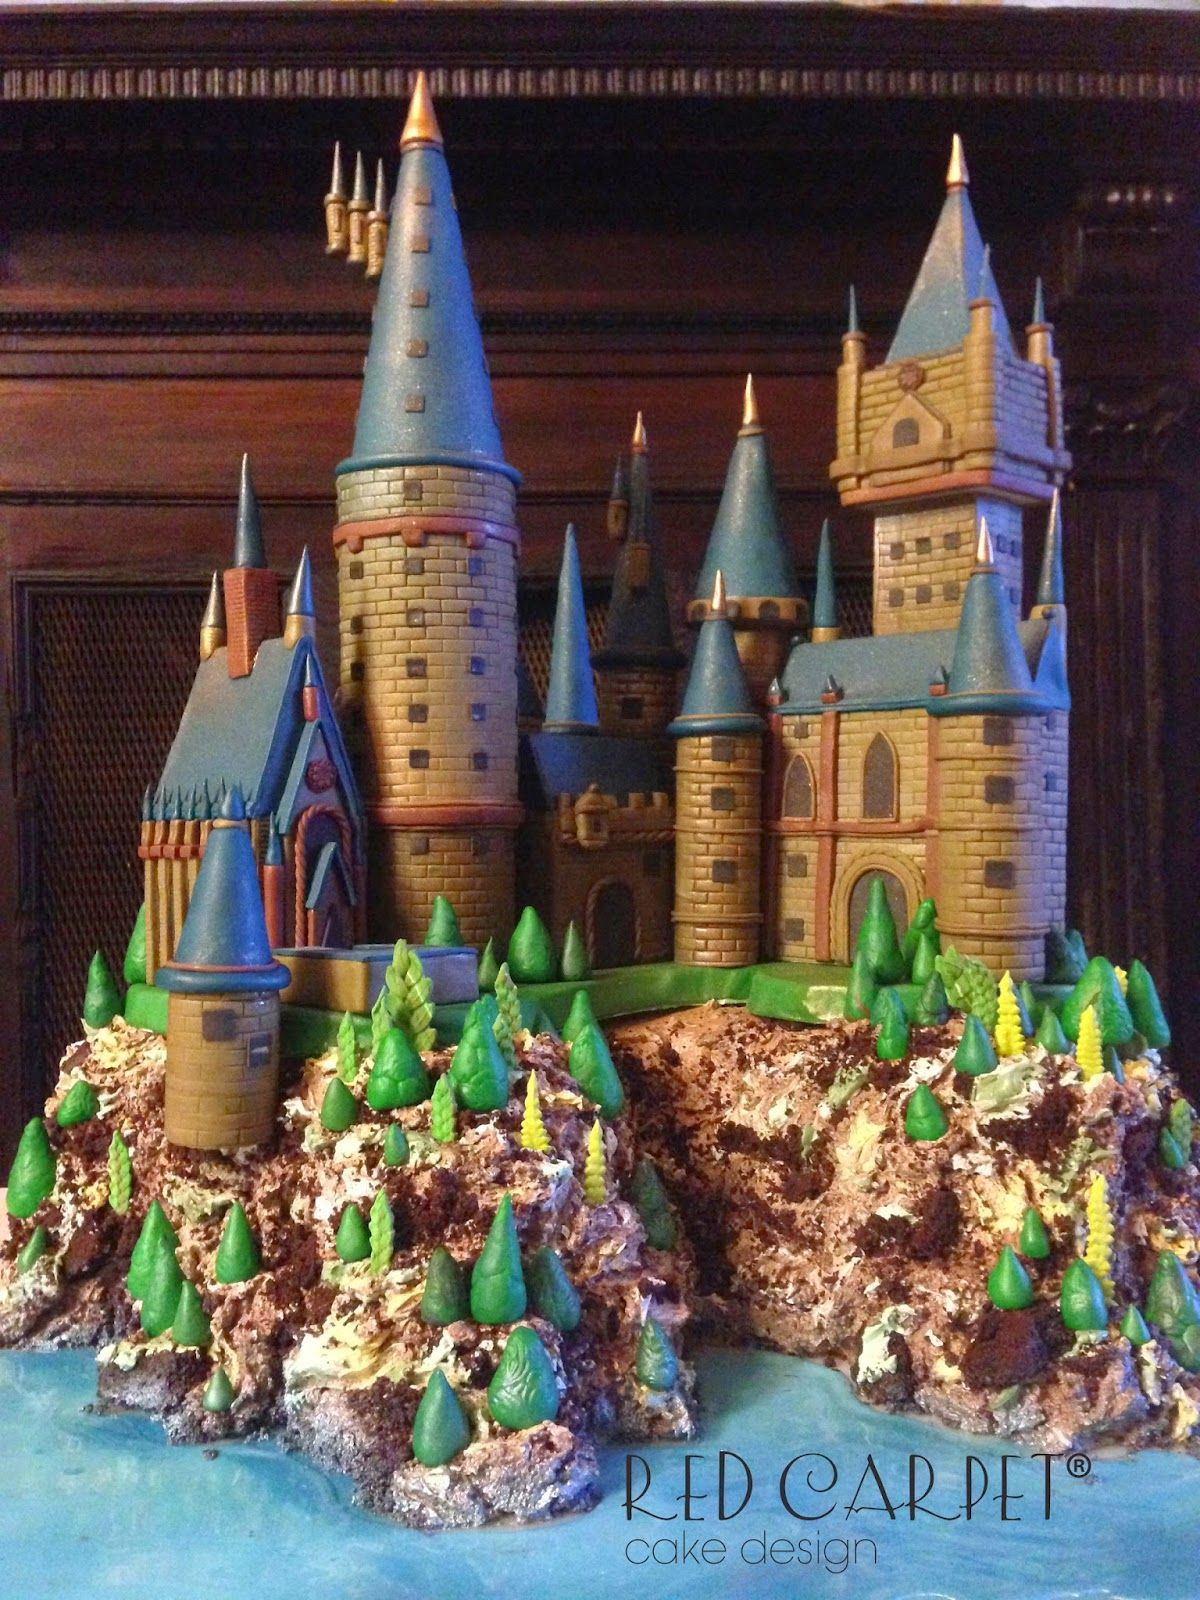 hogwarts cake harry potter castle by red carpet cake design red carpet cake design. Black Bedroom Furniture Sets. Home Design Ideas